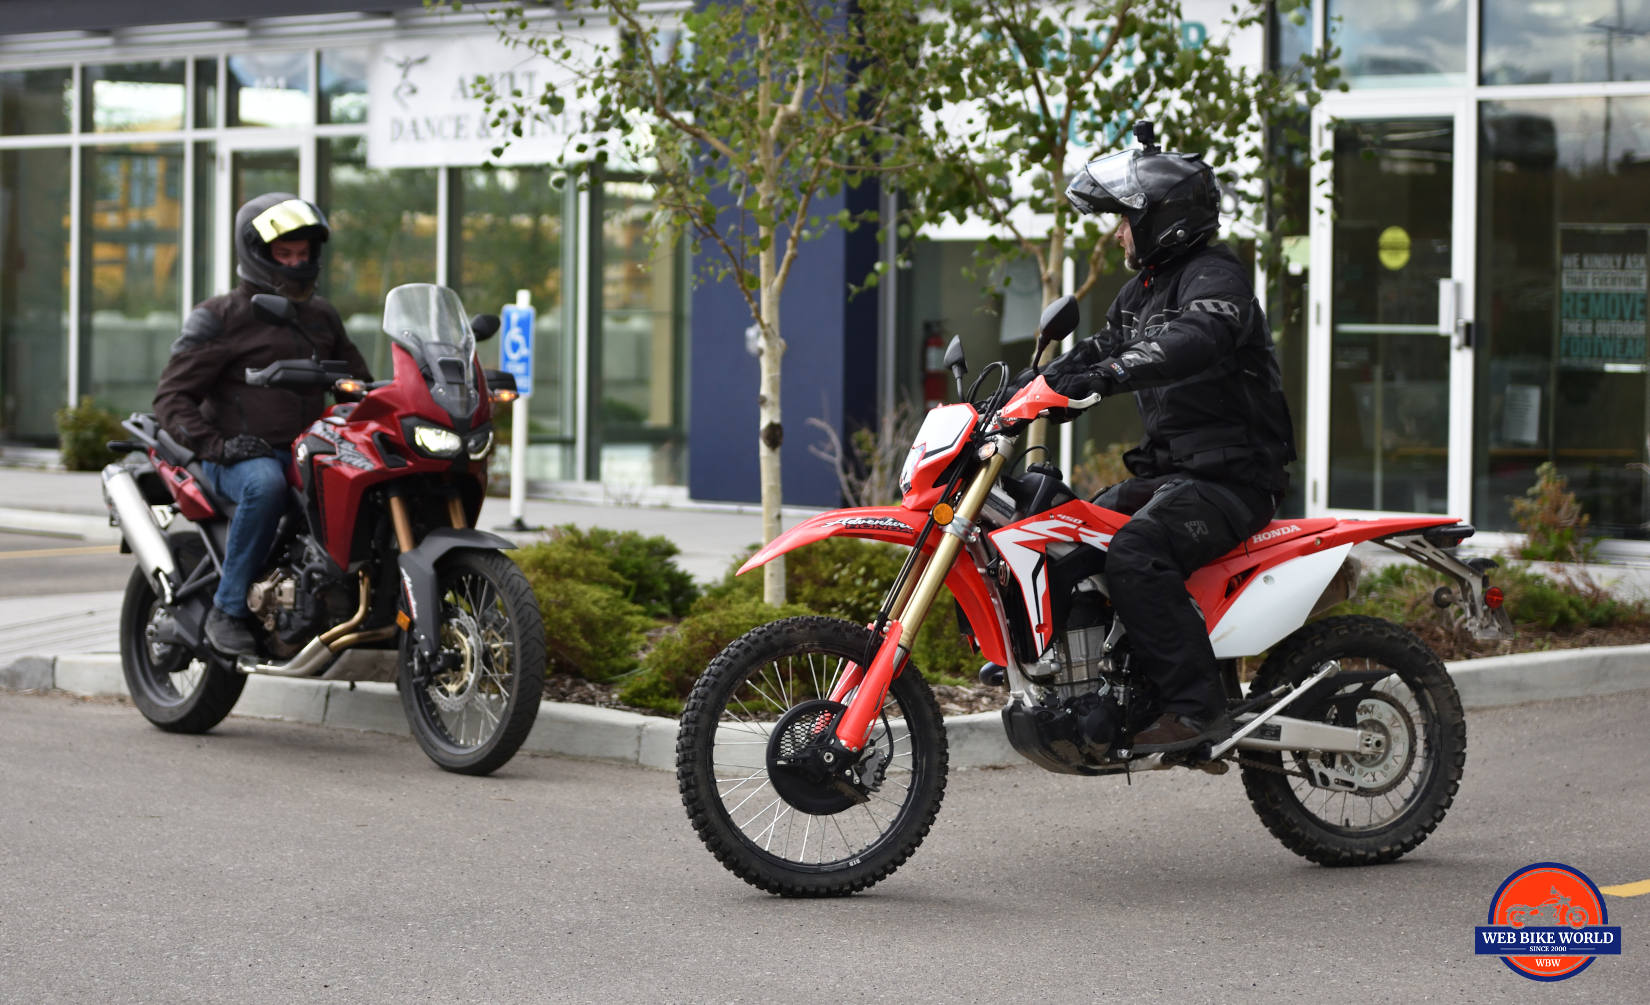 2019 Honda CRF450L and 2018 Honda Africa Twin looking on.